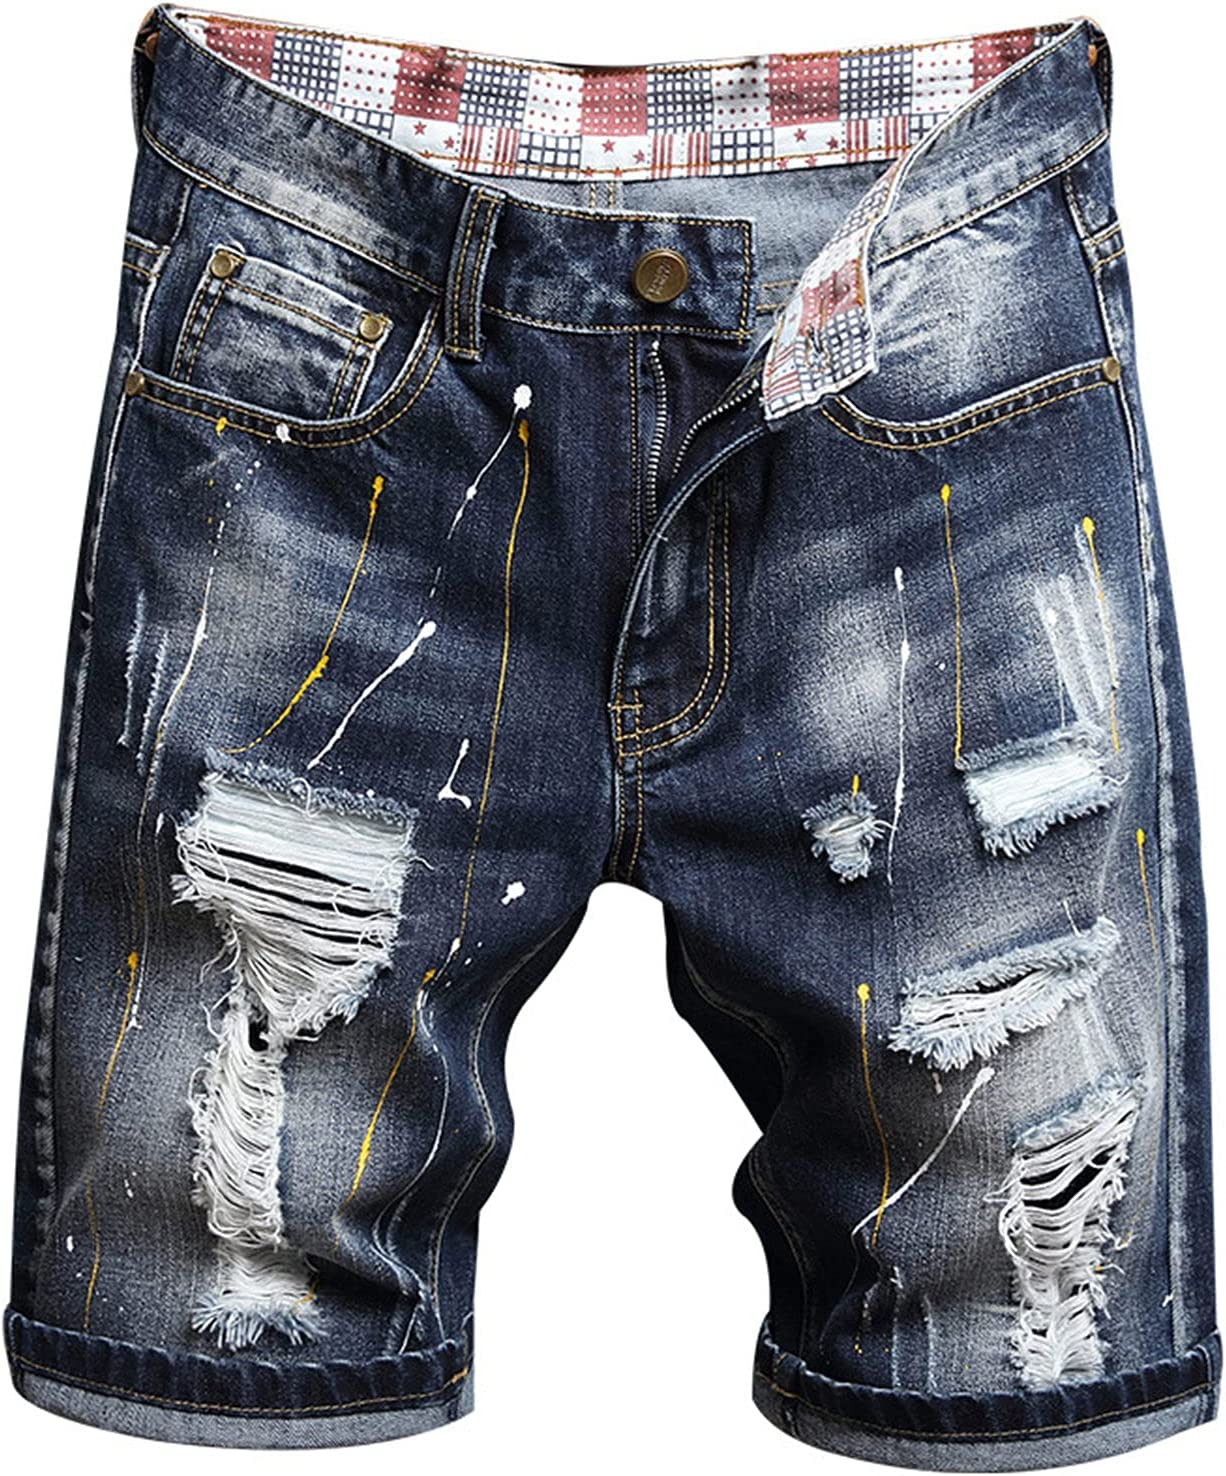 Men's Fashion Ripped Jean Shorts Casual Comfy Distressed Slim Fit Denims Short Street Style Knee Length Half Jeans (Navy Blue,34)